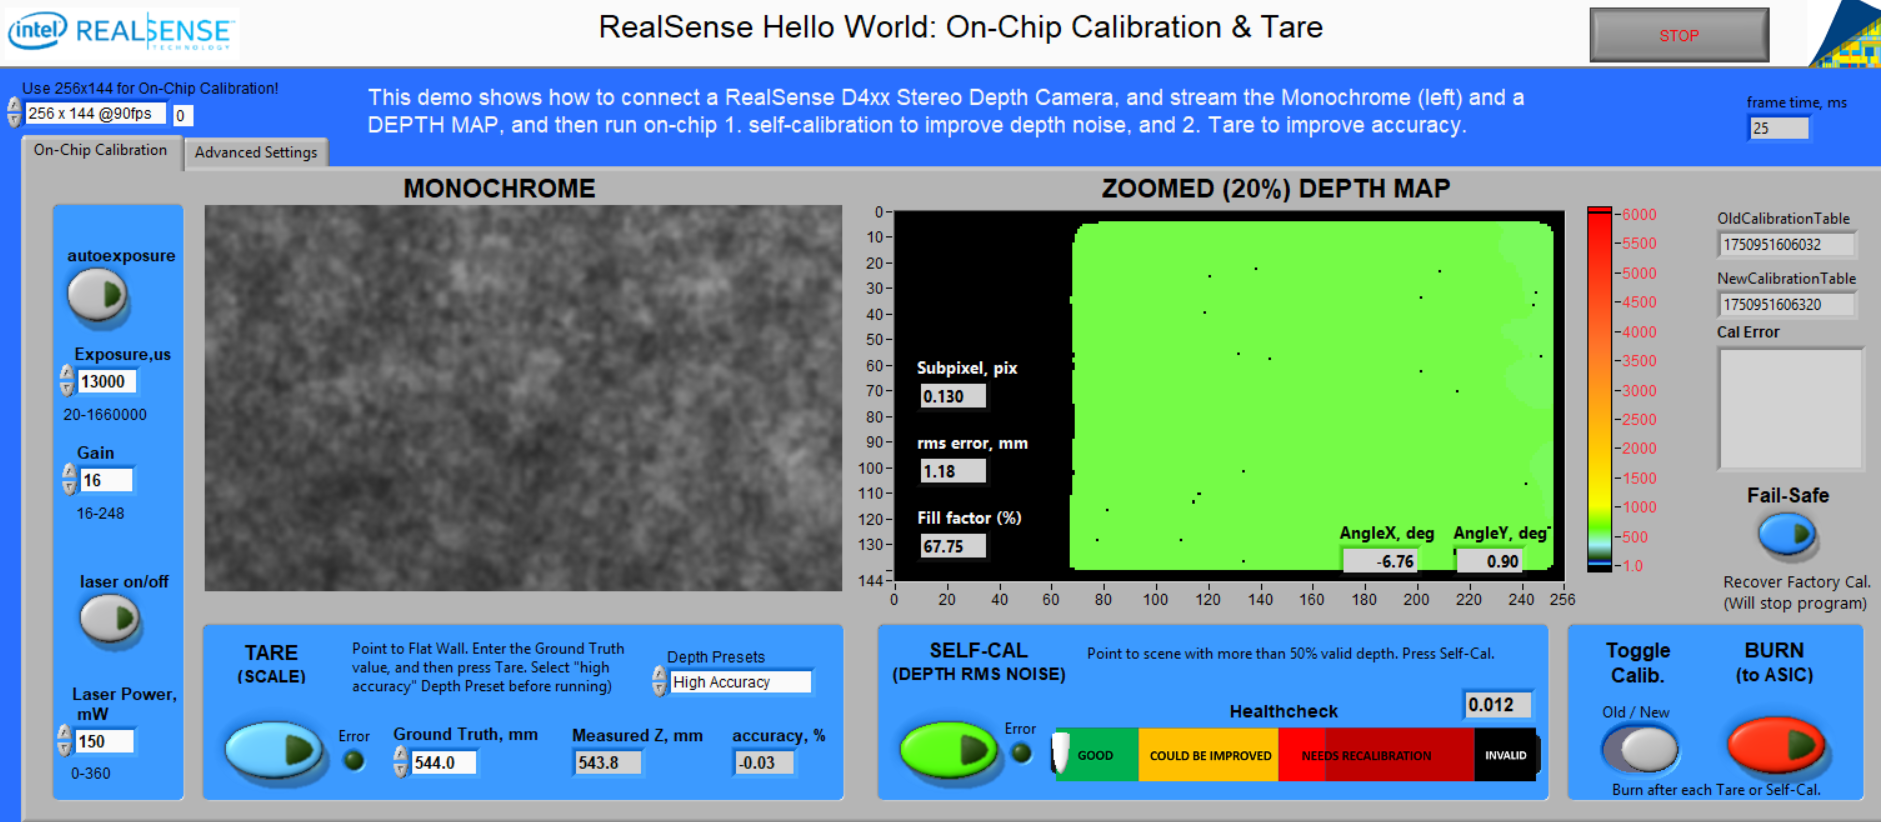 Fig 12: Hello World: On-Chip Calibration & Tare